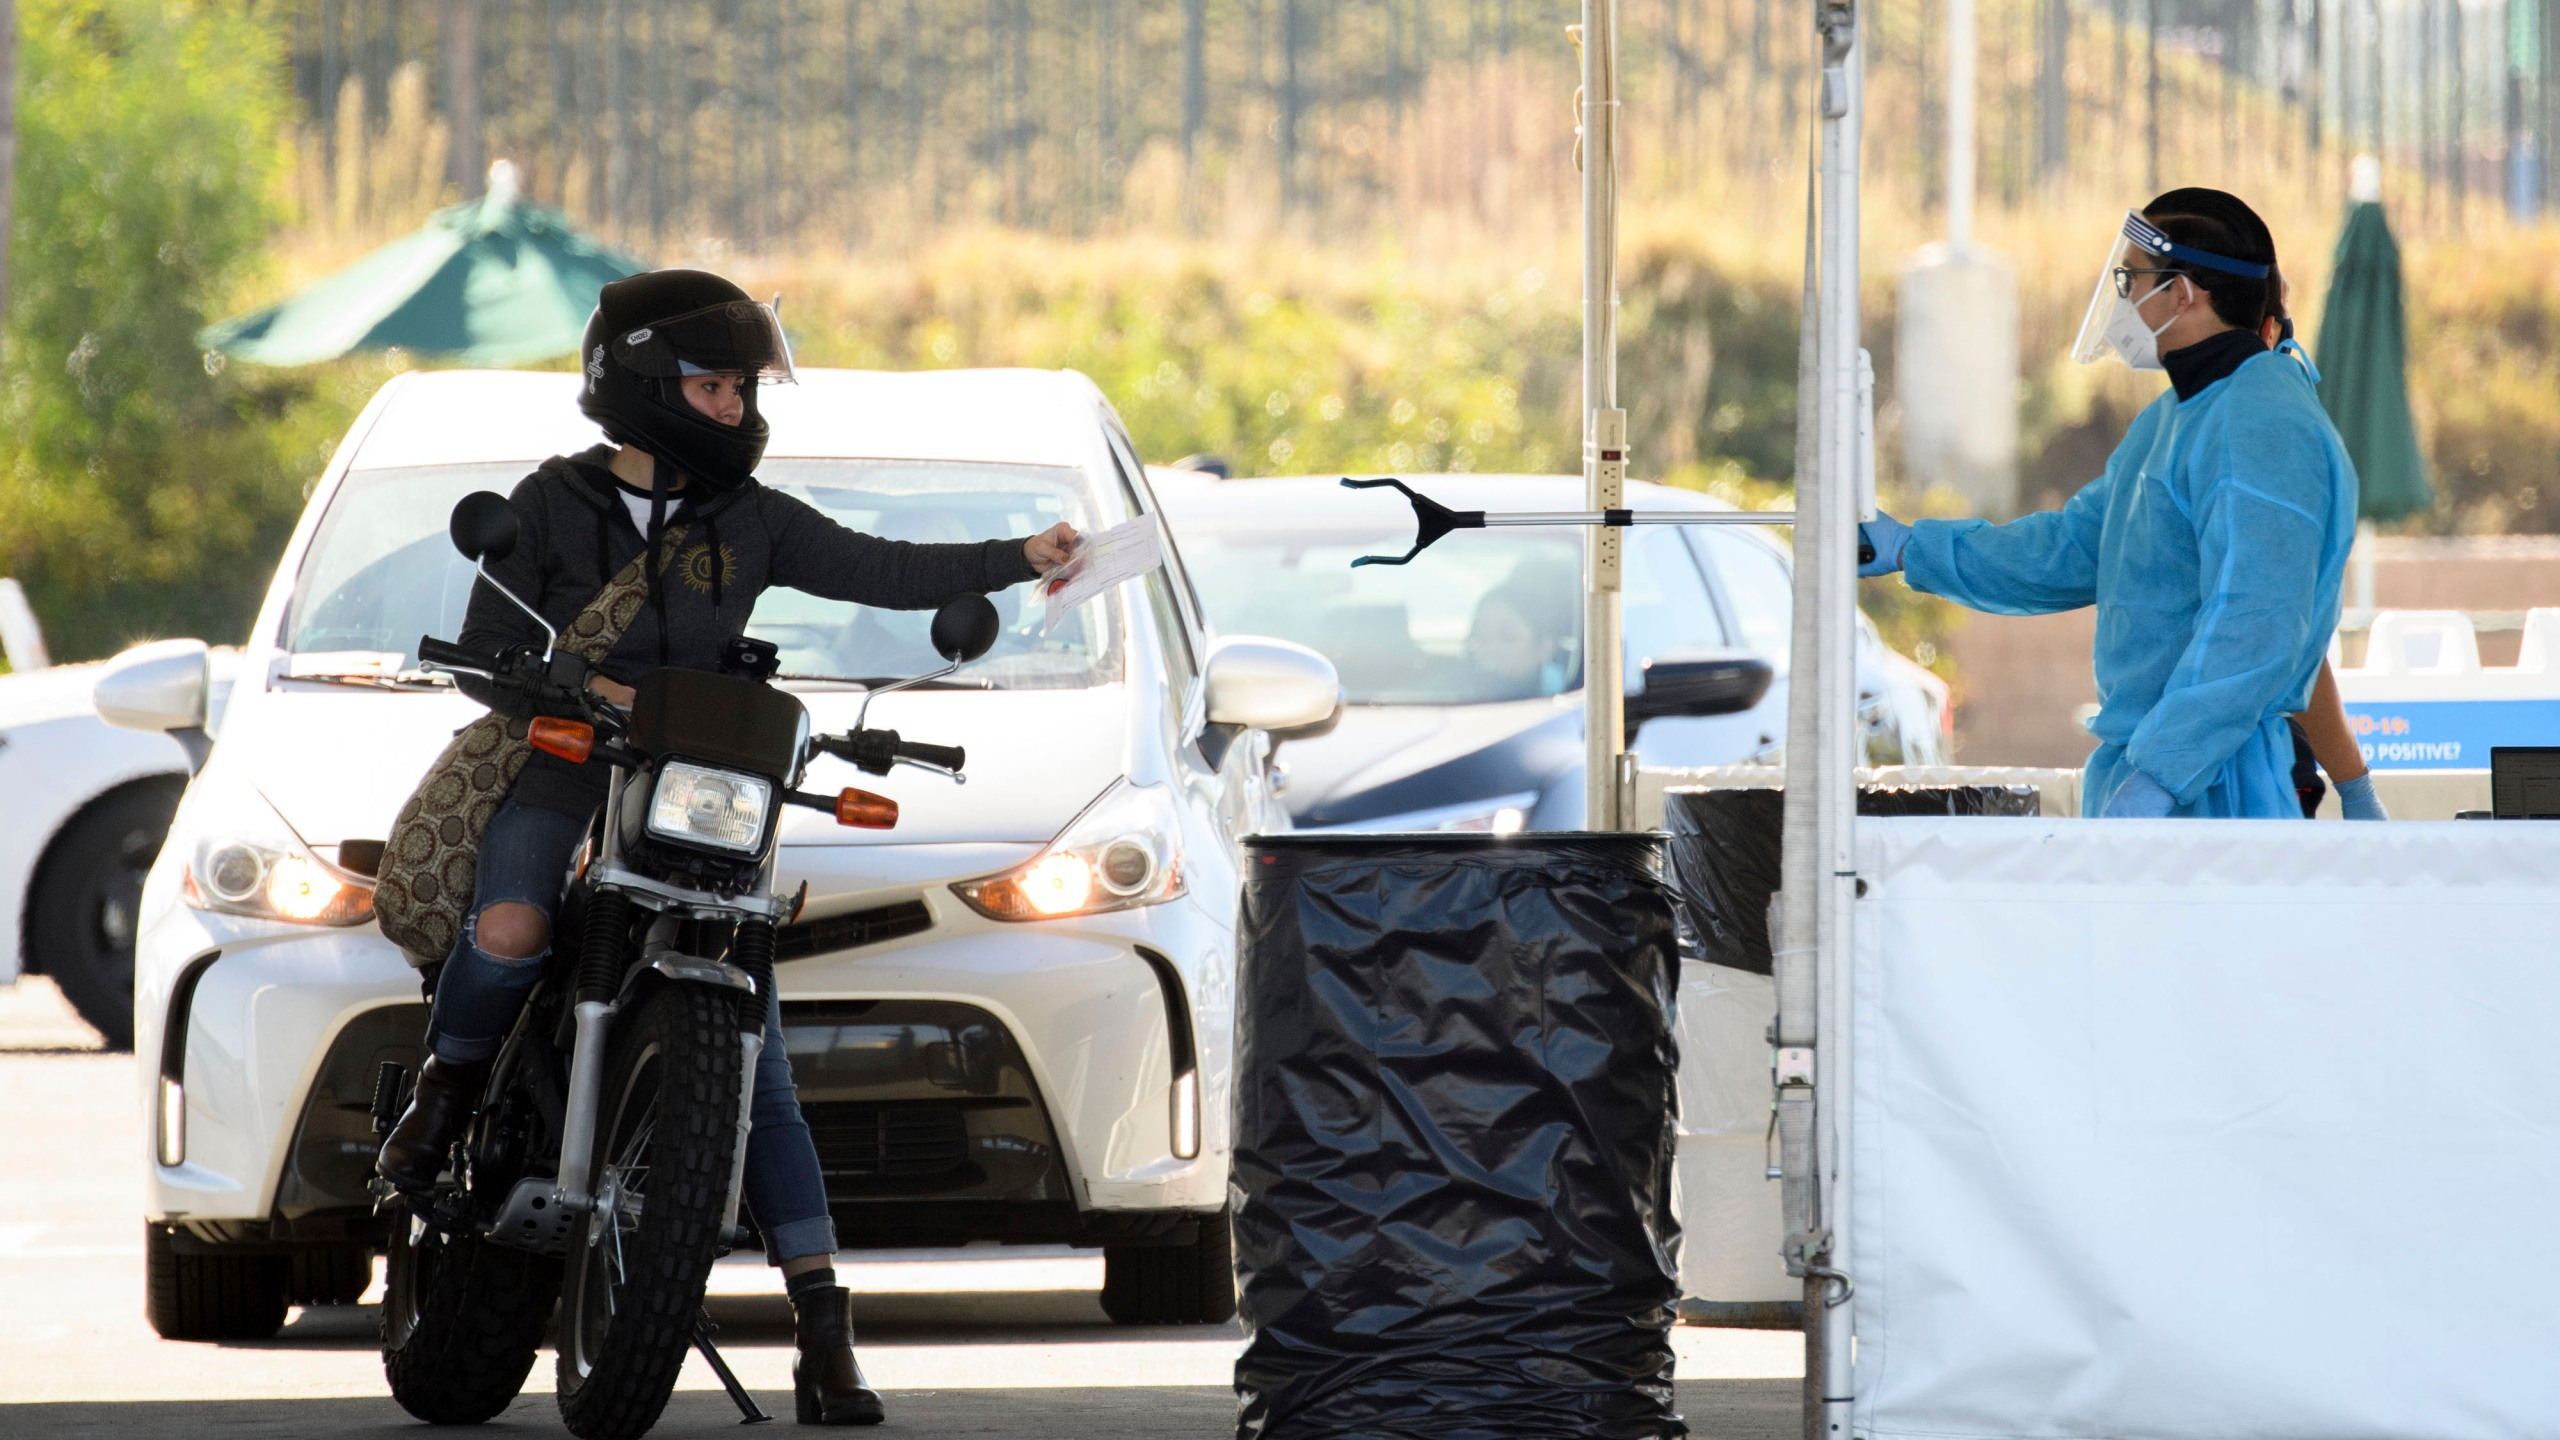 A COVID-19 testing site staff member uses a tool to collect paperwork from a motorcyclist at a drive-up testing site at the Orange County Fairgrounds in Costa Mesa, California, on Nov. 17, 2020. (PATRICK T. FALLON/AFP via Getty Images)